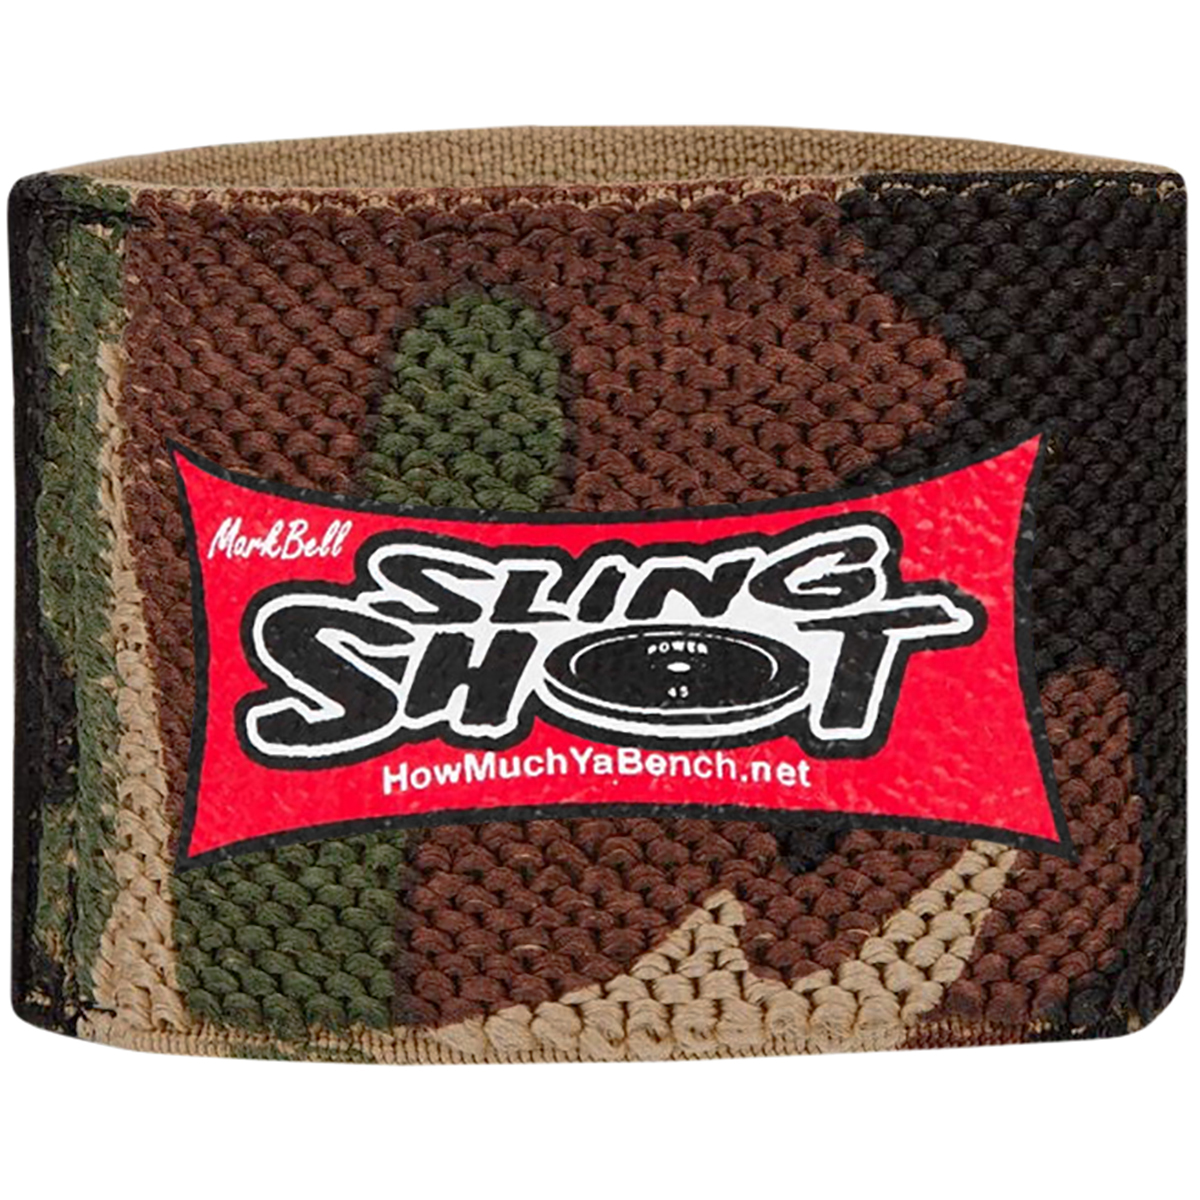 Sling-Shot-Compression-Cuff-Upper-Body-by-Mark-Bell-Elastic-joint-support-band thumbnail 12